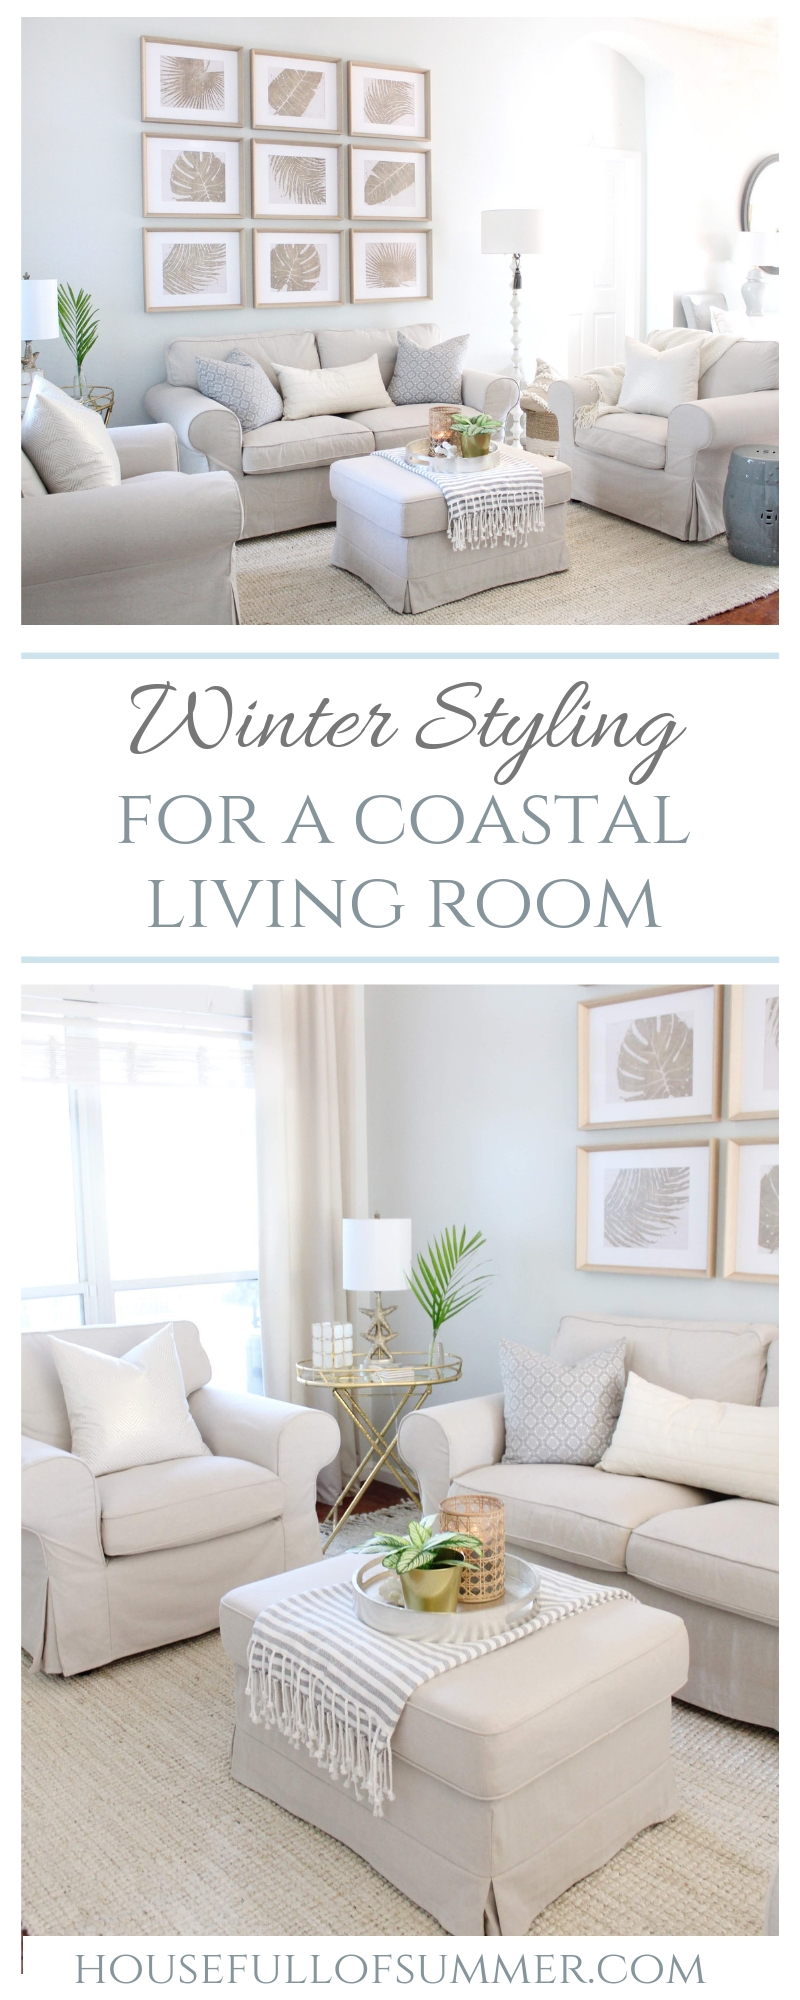 Styling My Coastal Living Room for Winter | House Full of Summer - coastal decor, living room decor, decorating for winter, neutral furniture, jute rug, gallery wall, palm fronds, gray paint color, wall color